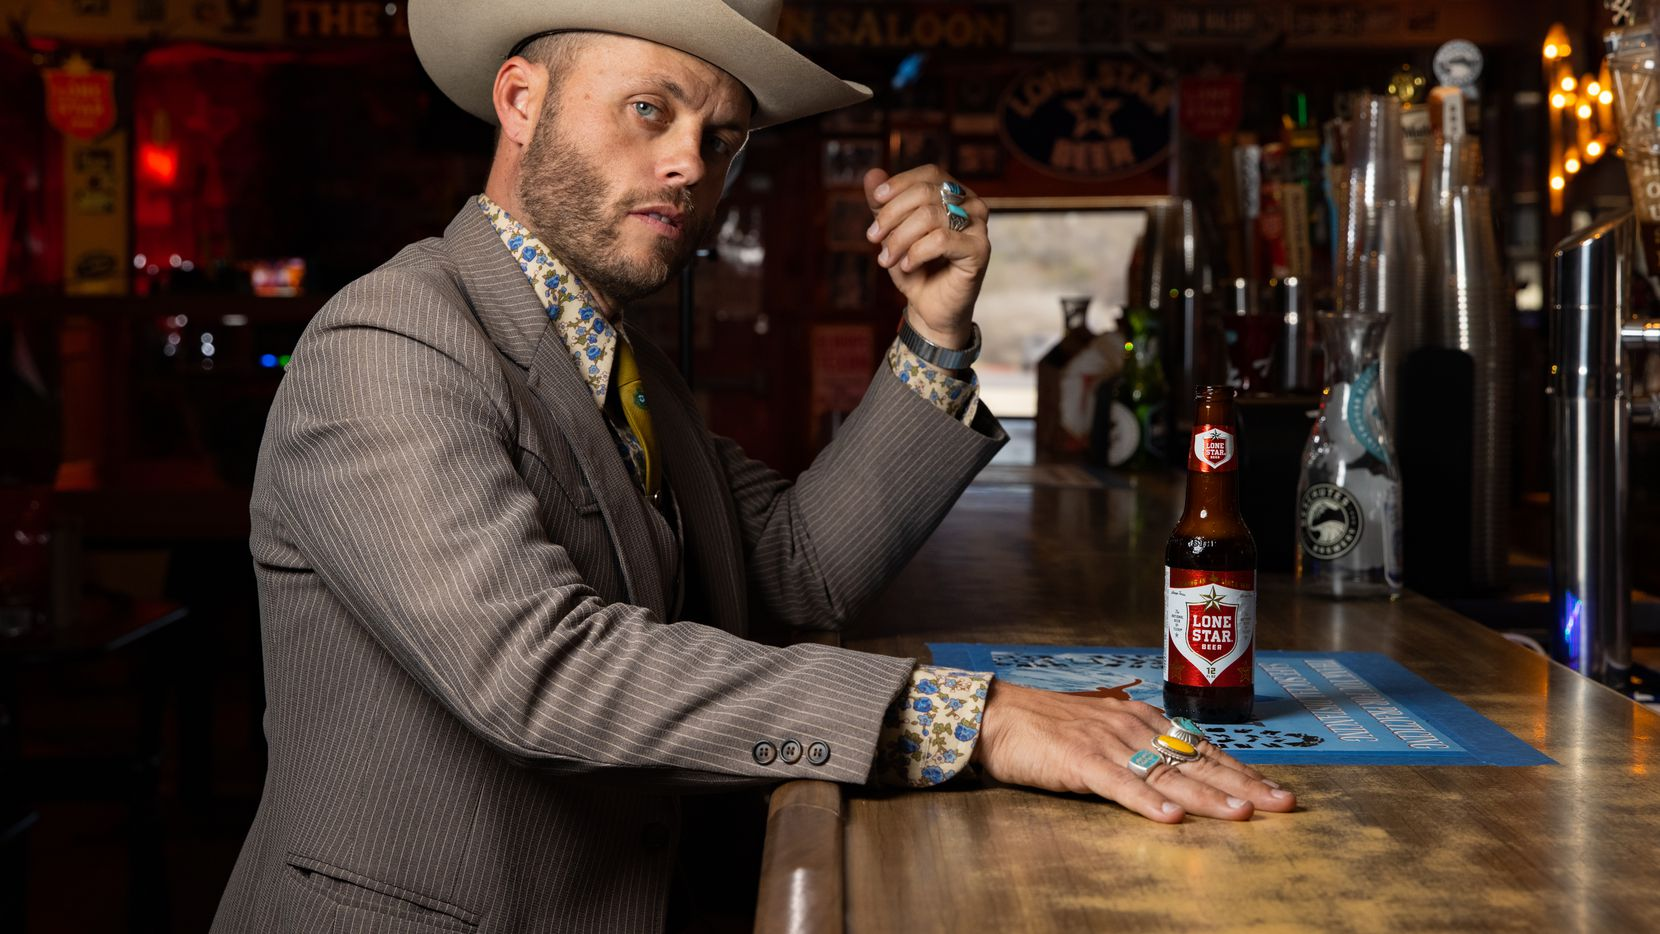 Charley Crockett poses Tuesday at the bar of the Little Longhorn Saloon in Austin, where he first saw James Hand perform.